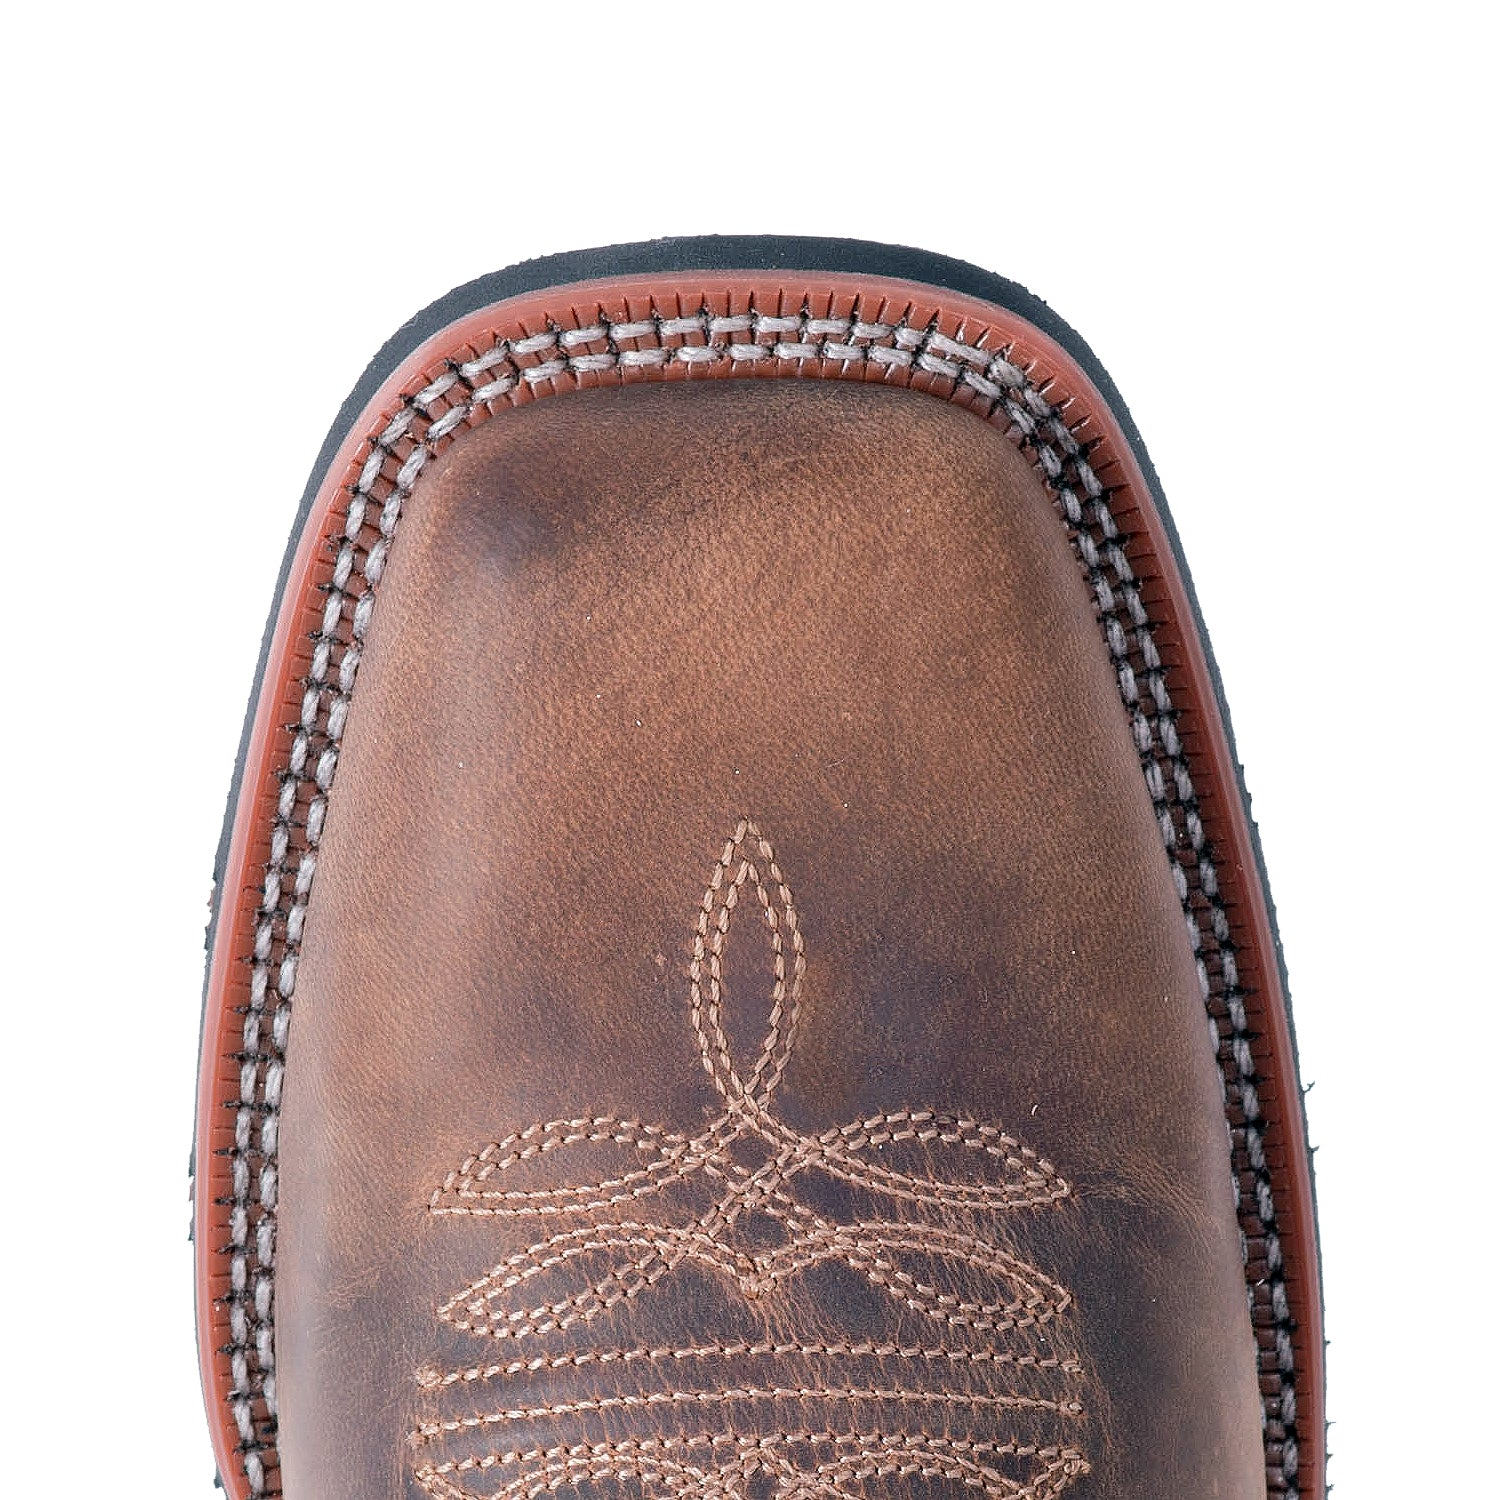 KANE LEATHER BOOT - Dan Post Boots